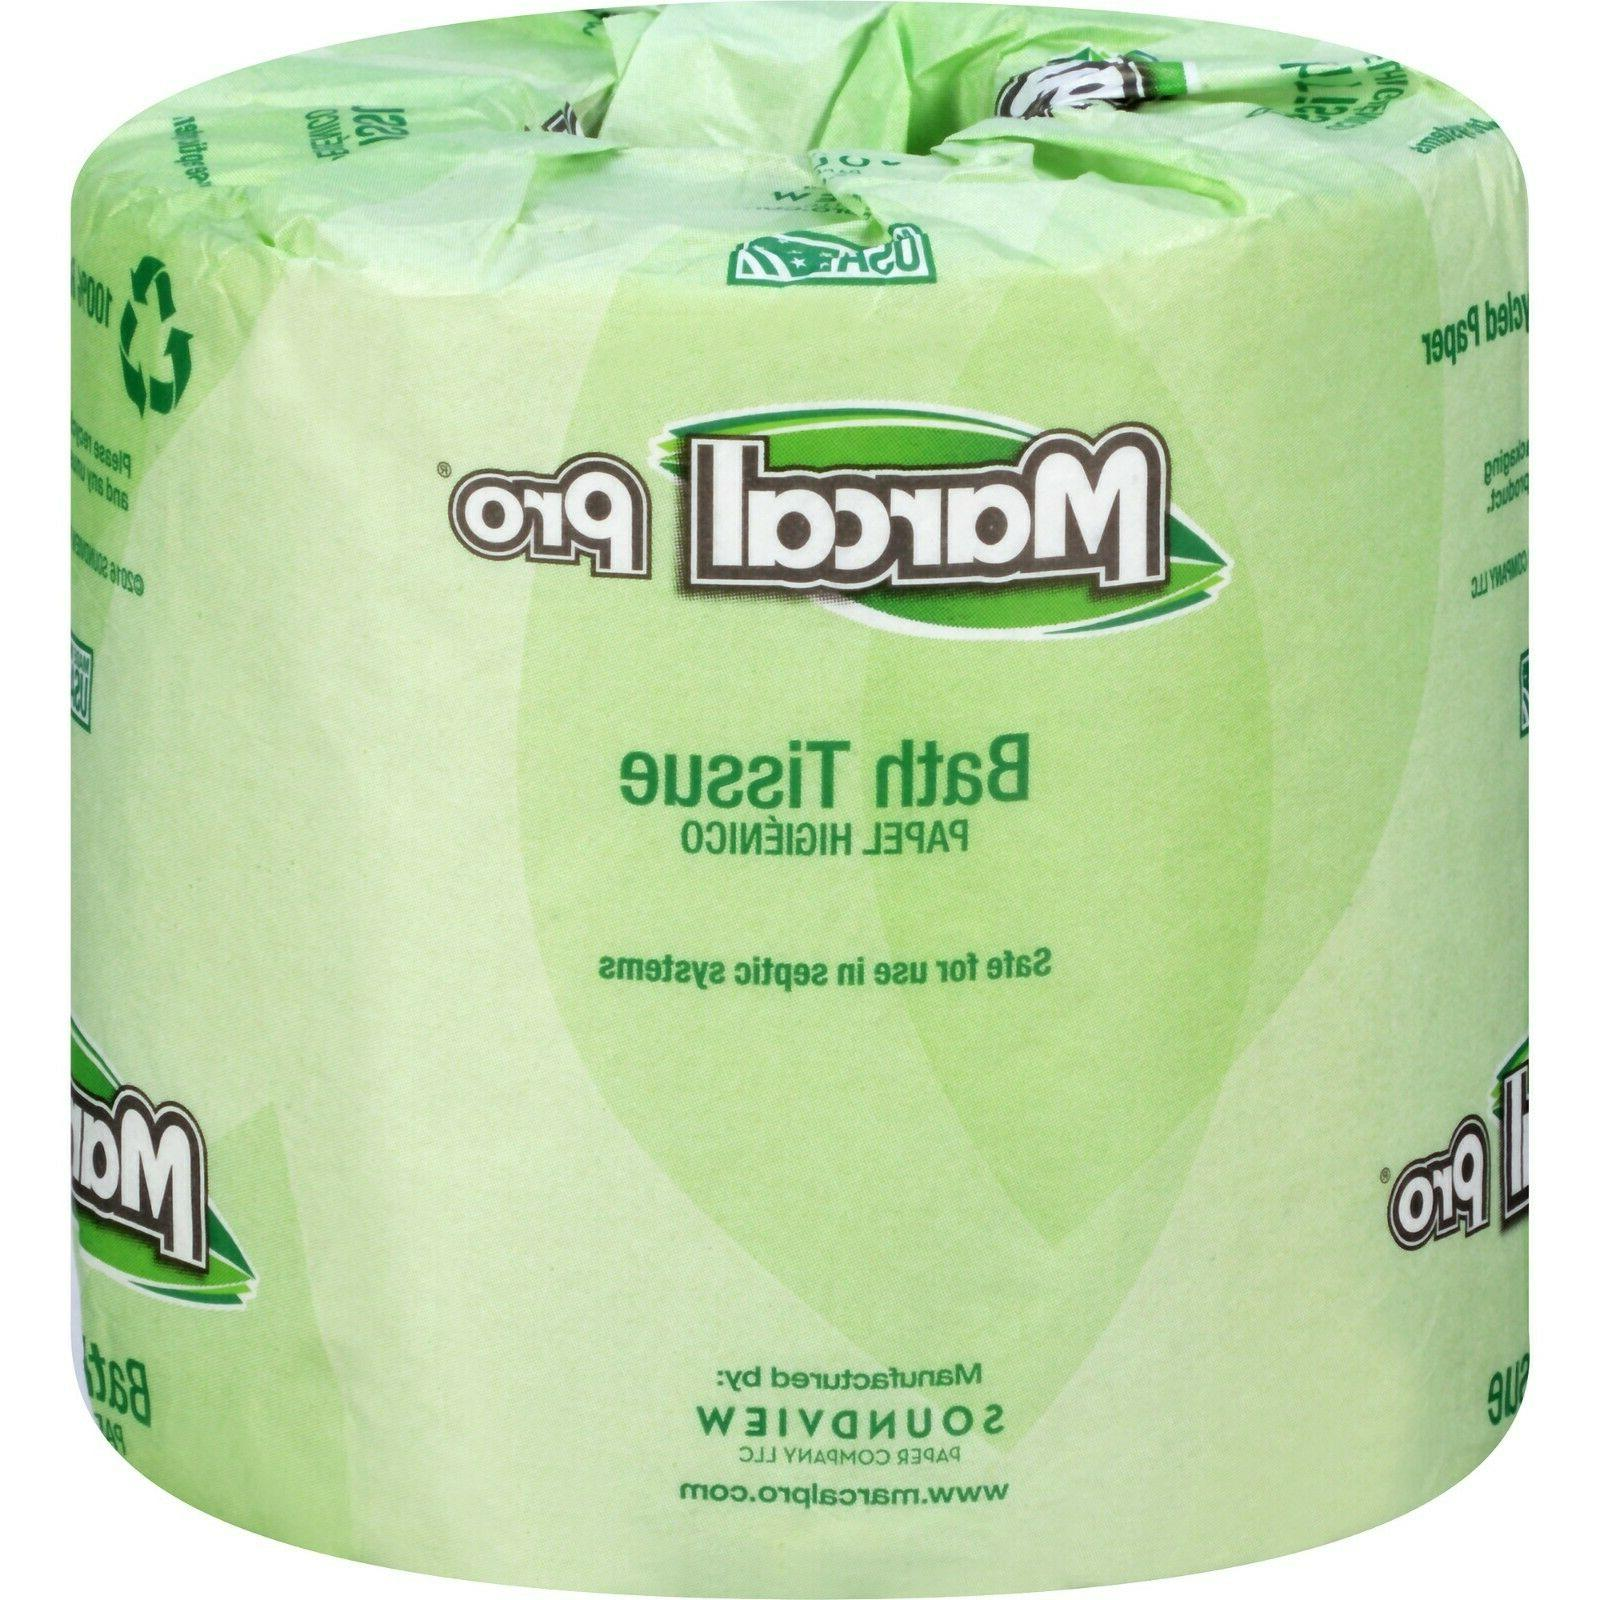 Marcal Bathroom Tissue Septic Safe 2-Ply White 240 Sheets/Ro